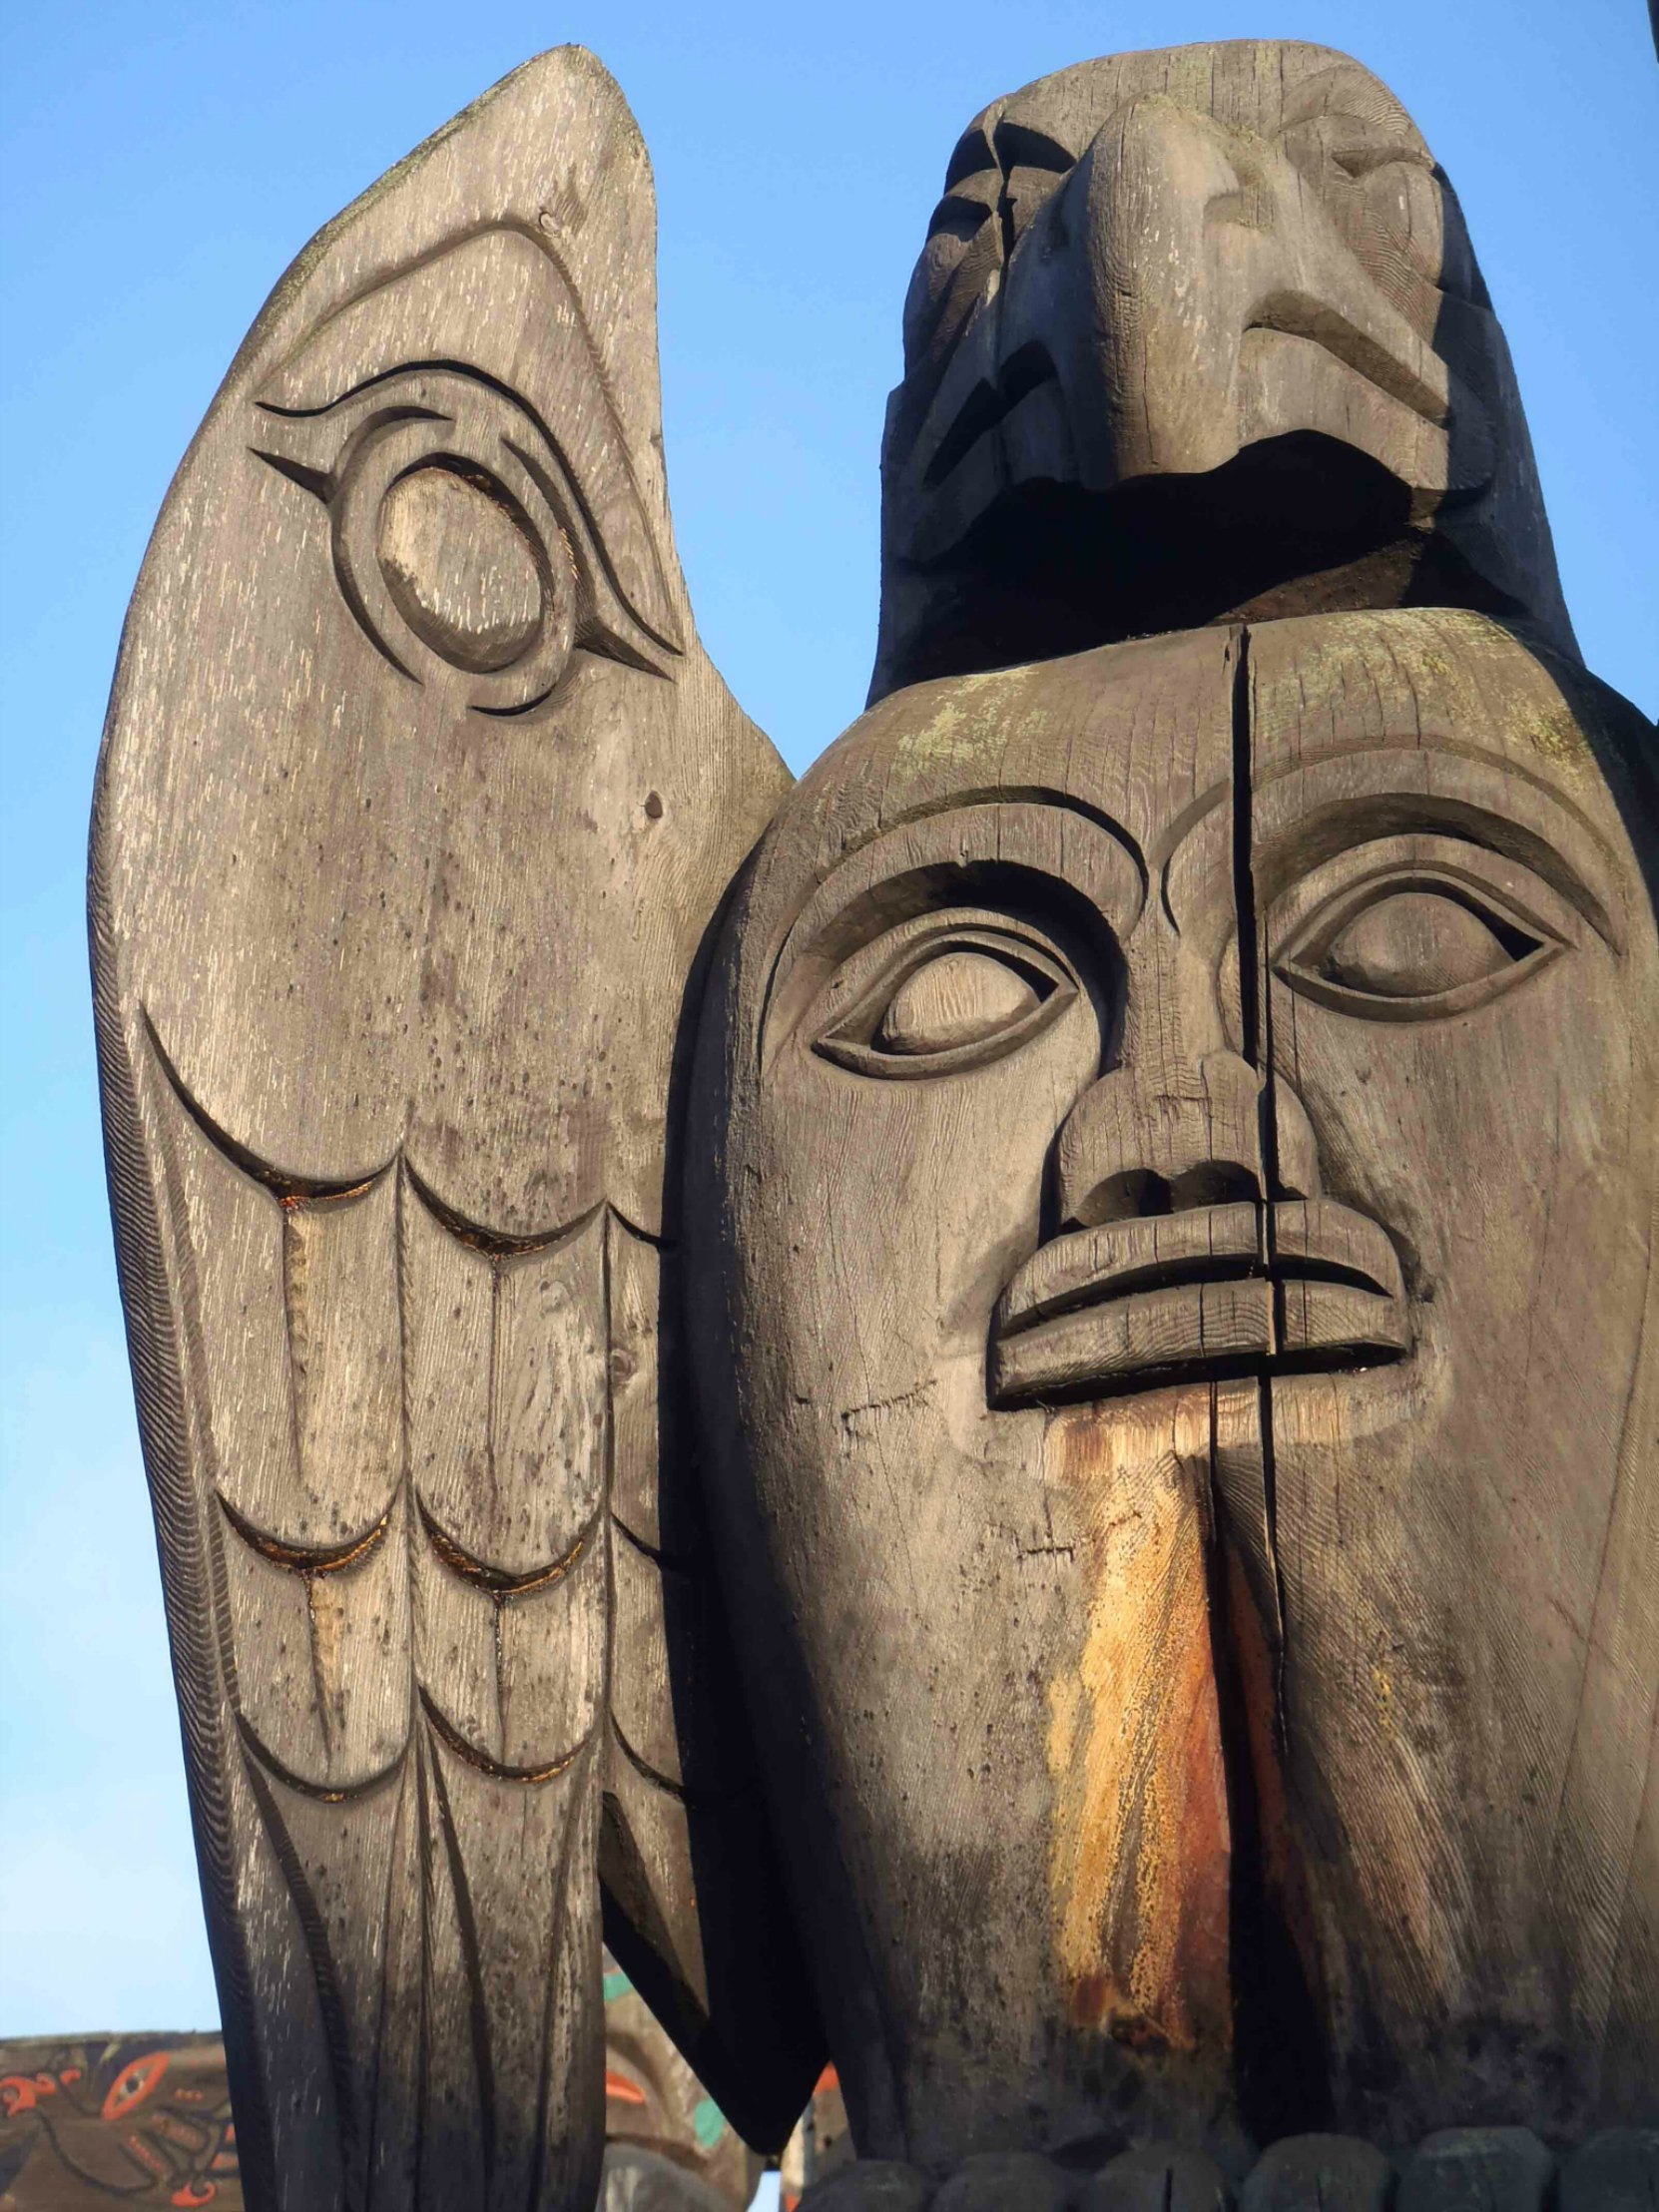 Transformation pole, Eagle and Spirit figures, wing detail, Canada Avenue between Station Street and Kenneth Street